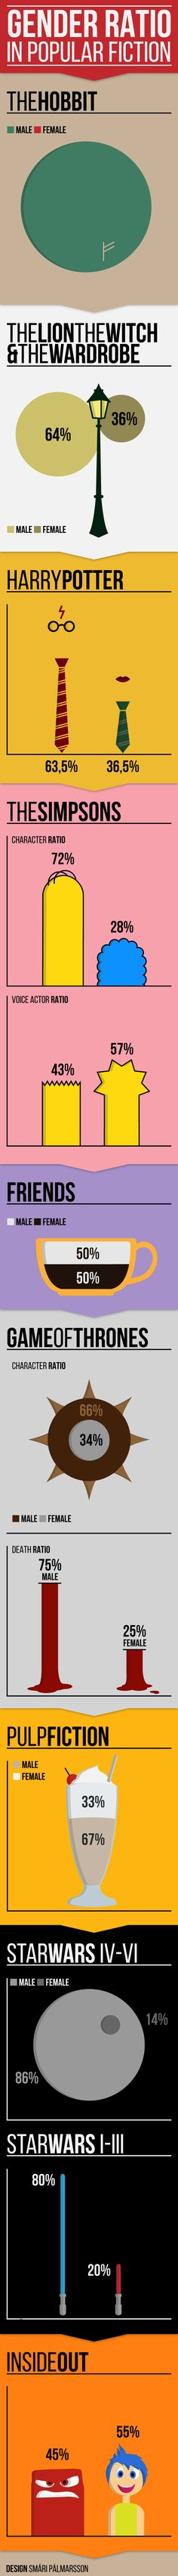 Gender ratio in popular works of fiction: Harry Potter, The Hobbit, A Game of Thrones, Star Wars, and more